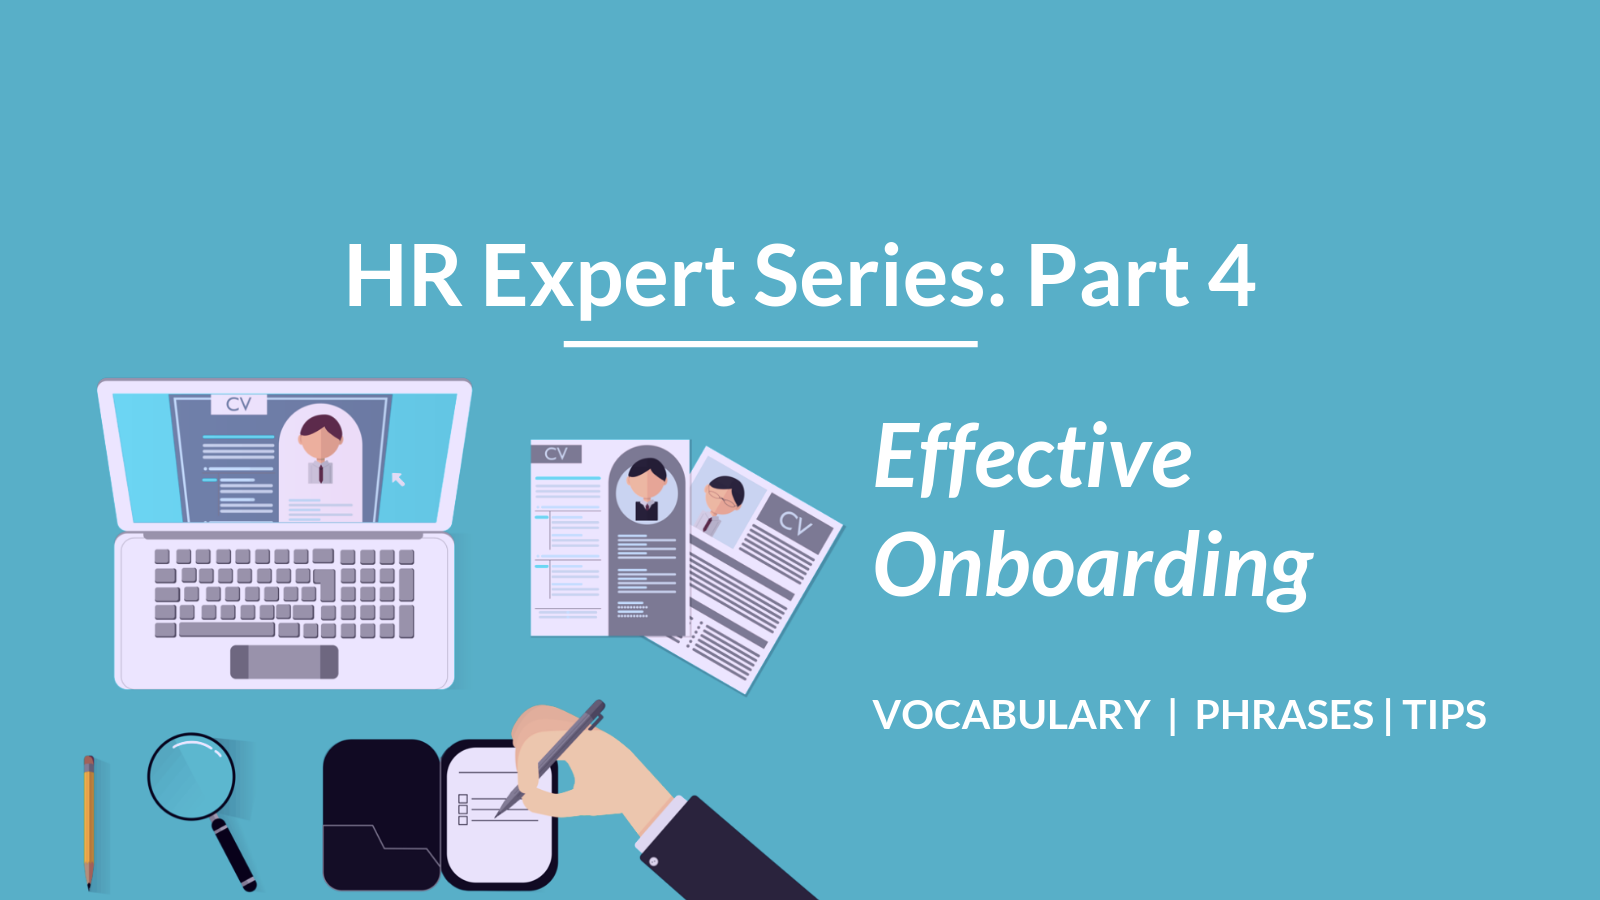 Talaera - HR Vocabulary Series - Onboarding vocabulary